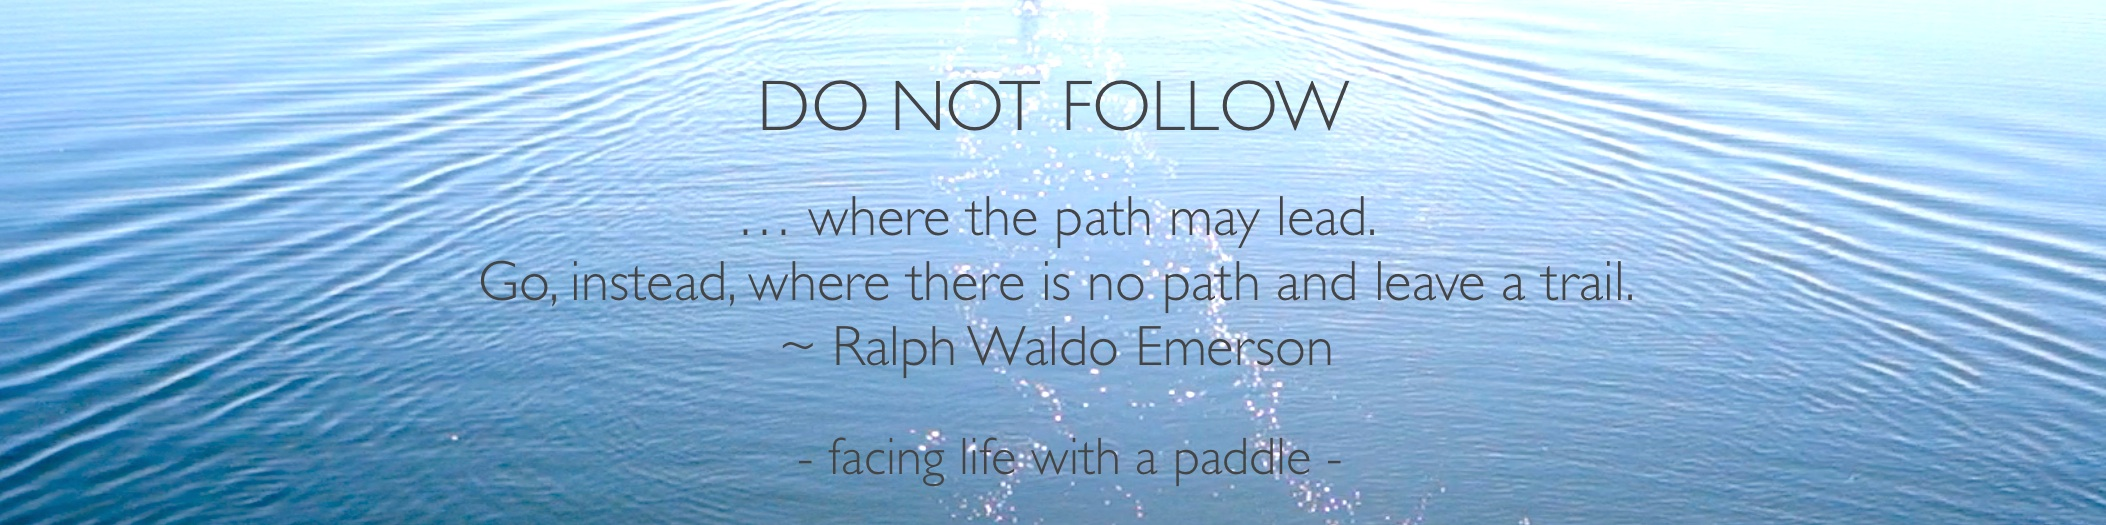 - facing life with a paddle -